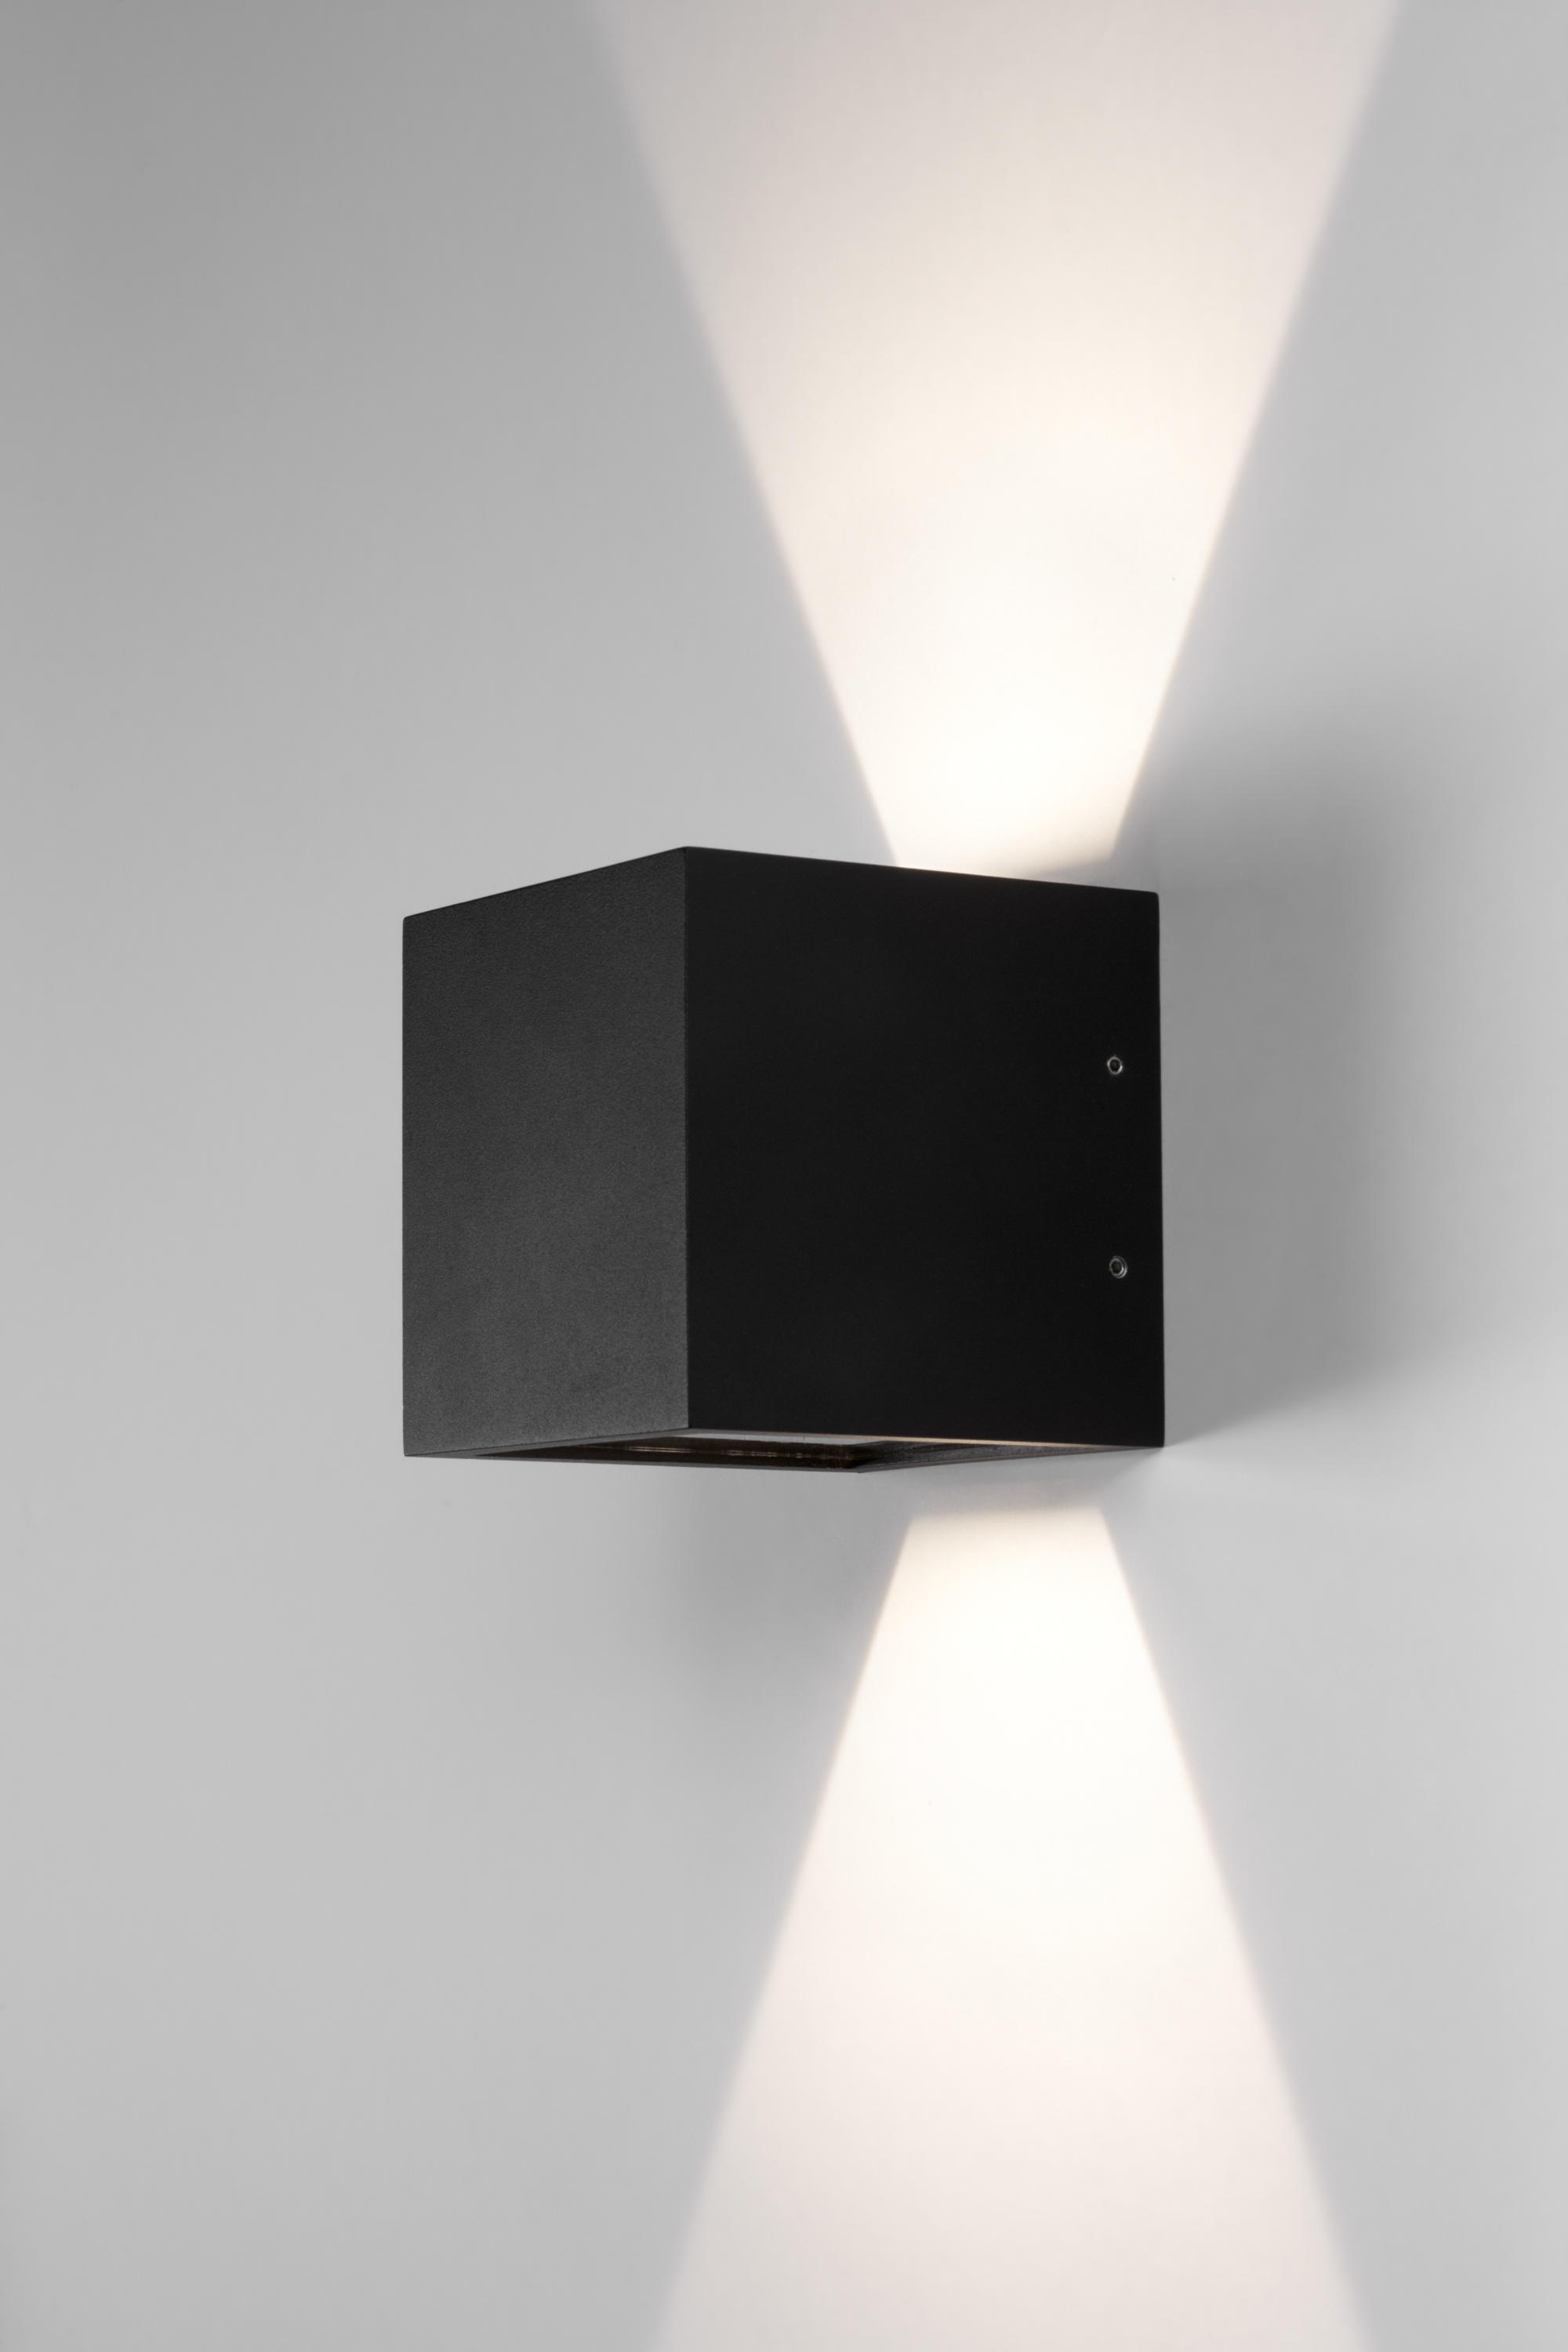 Cube led wall lights from light point architonic cube led by light point wall lights aloadofball Image collections